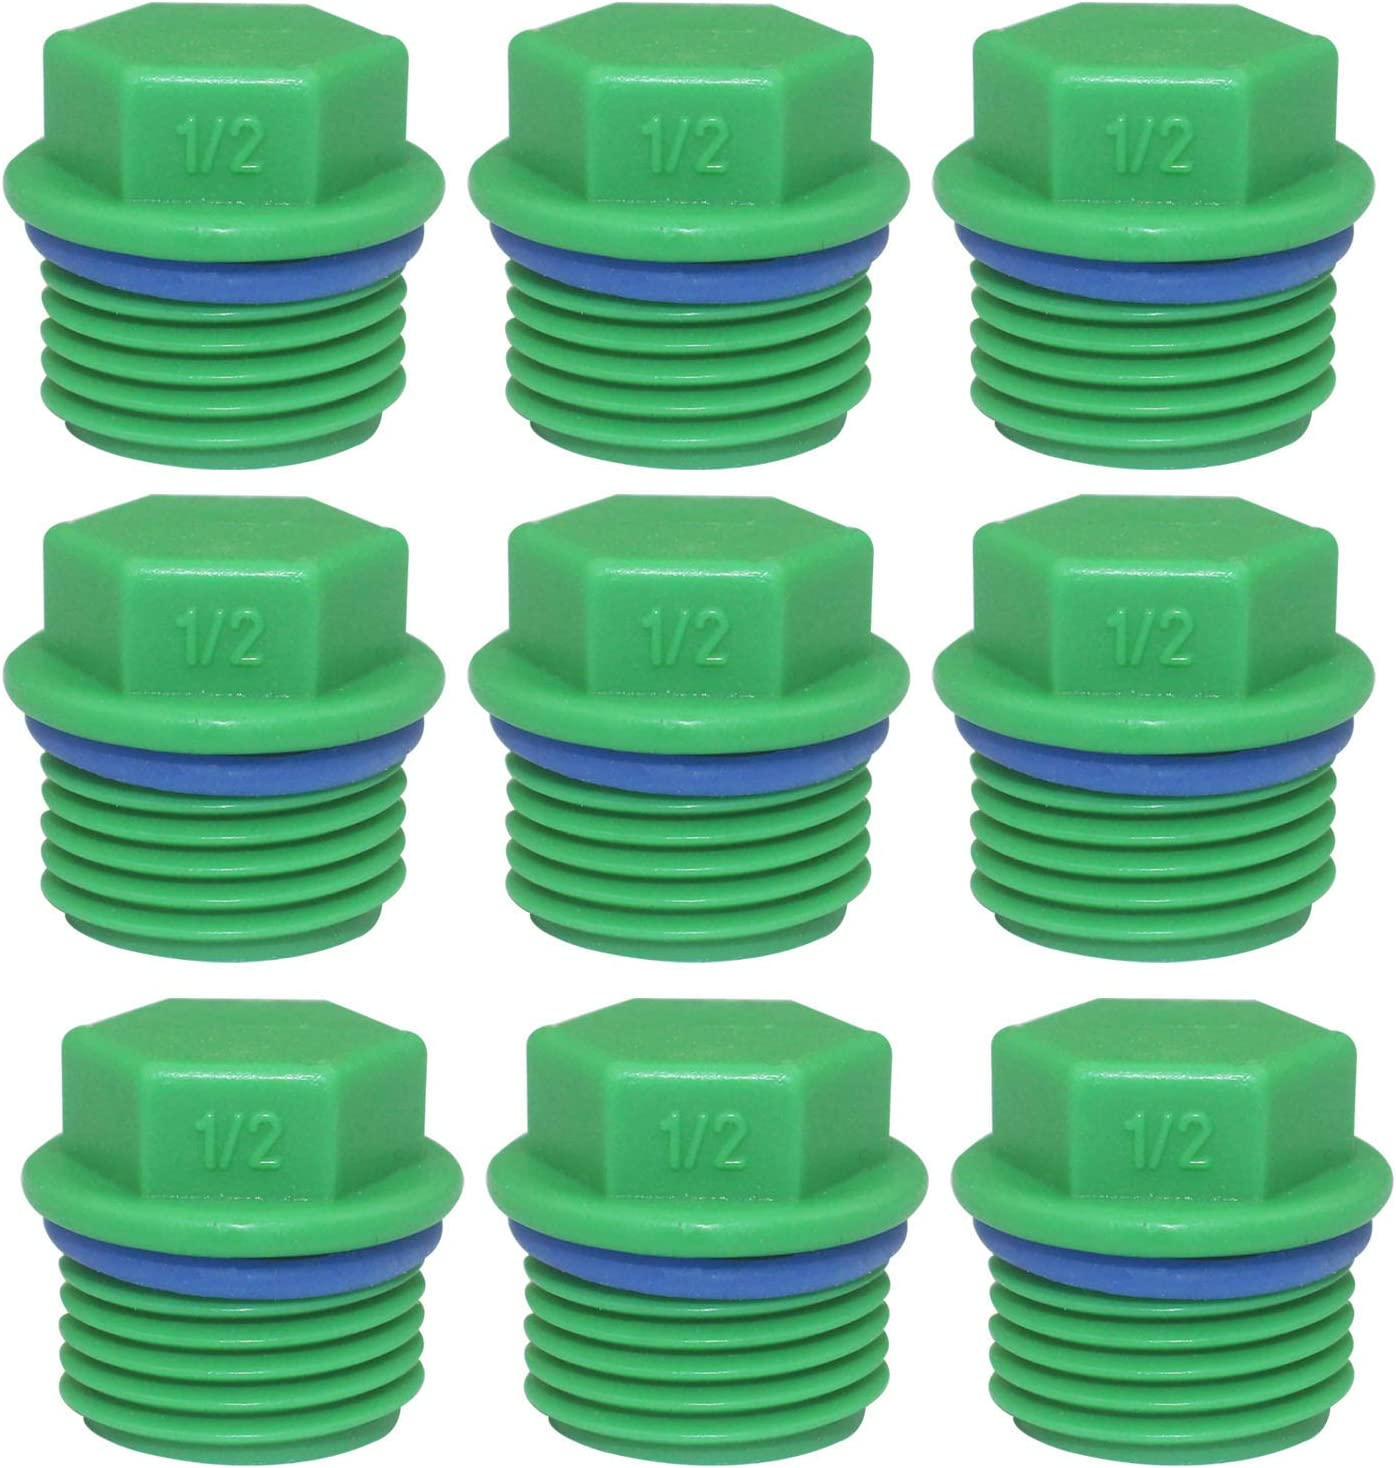 30 Pieces Male Threaded PPR End Cap Plugs Garden Irrigation Pipe Fittings Water Tubing Stopper for Preventing Leakage Clogging (1/2 inch)